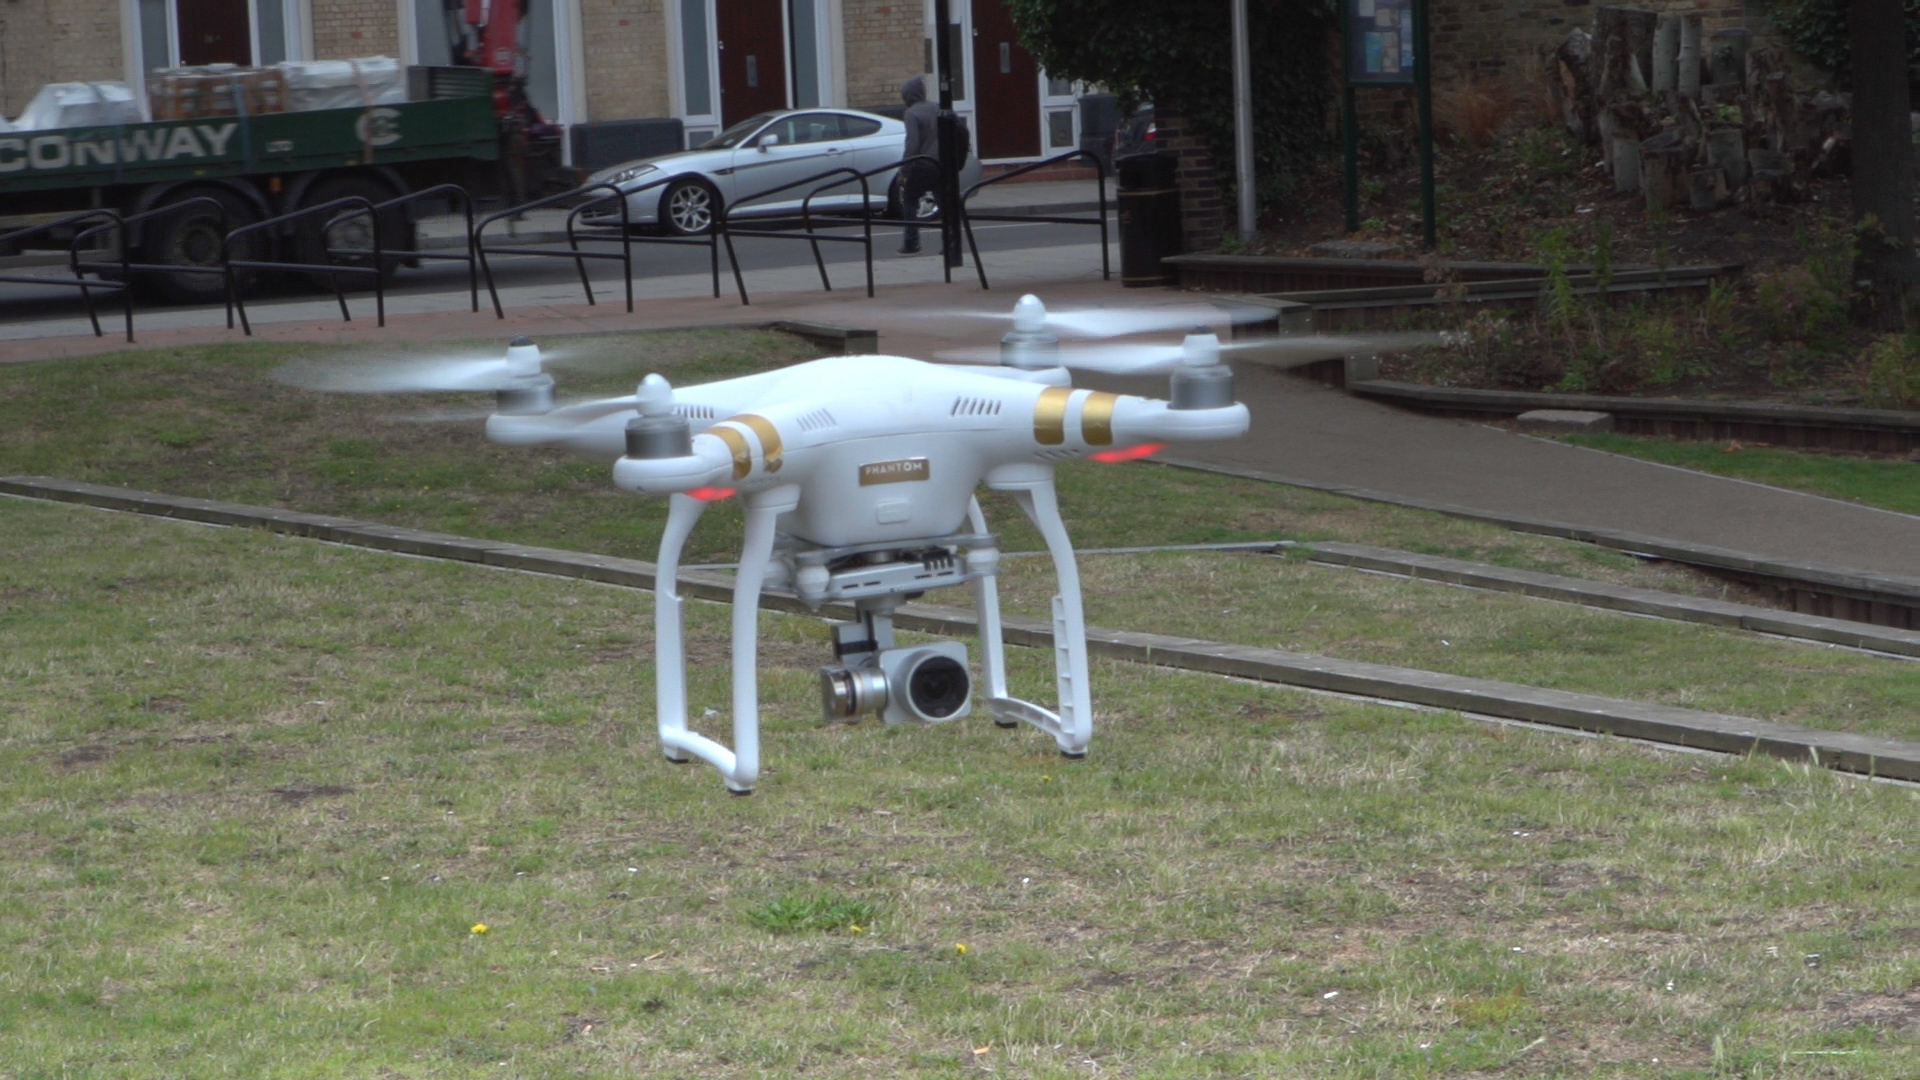 Video: The DJI Phantom 3 is a brilliant way to capture gorgeous video from the air